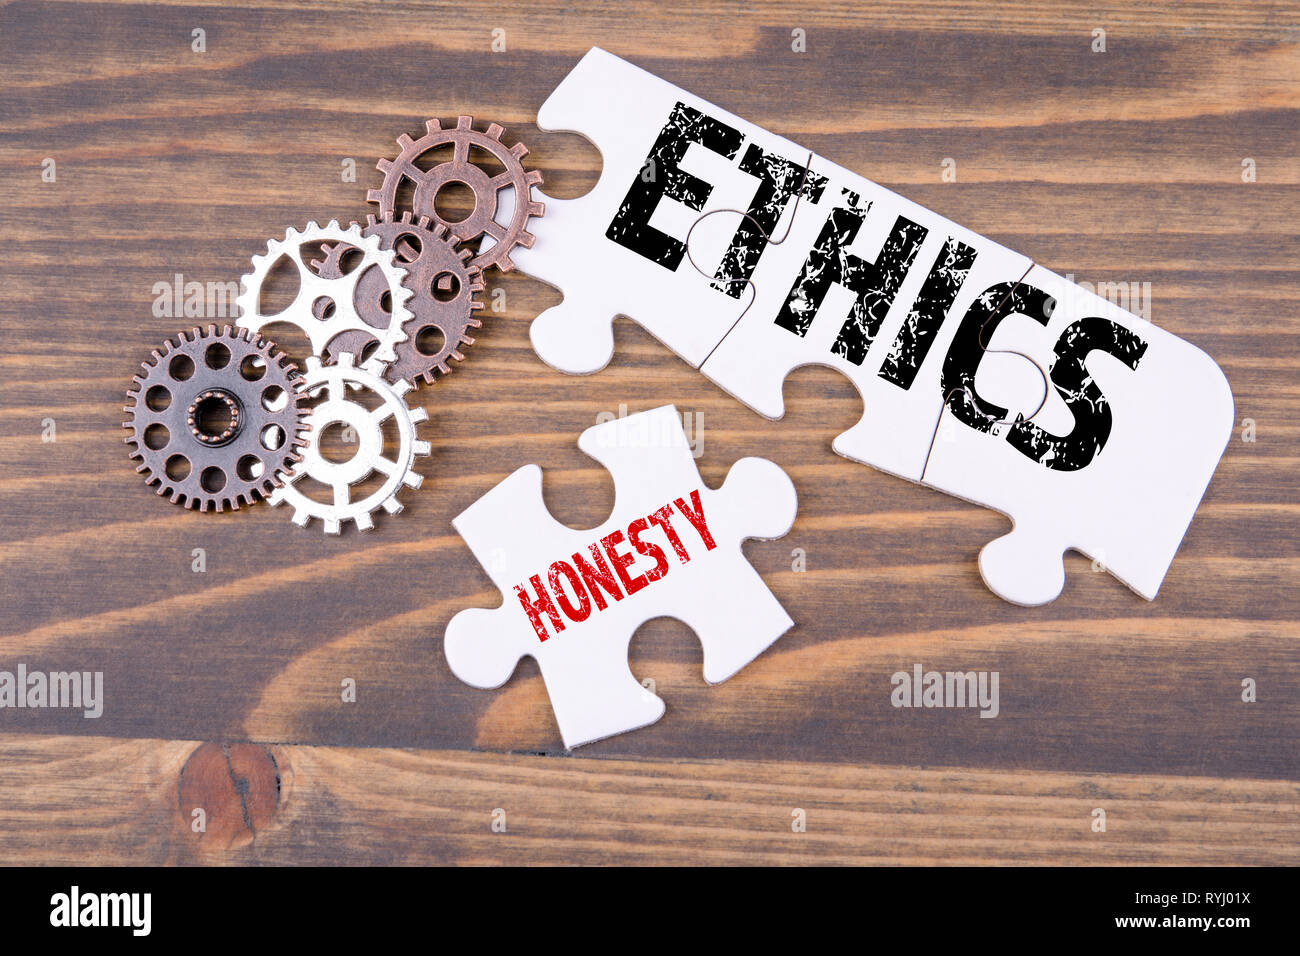 Ethics and honesty concept - Stock Image